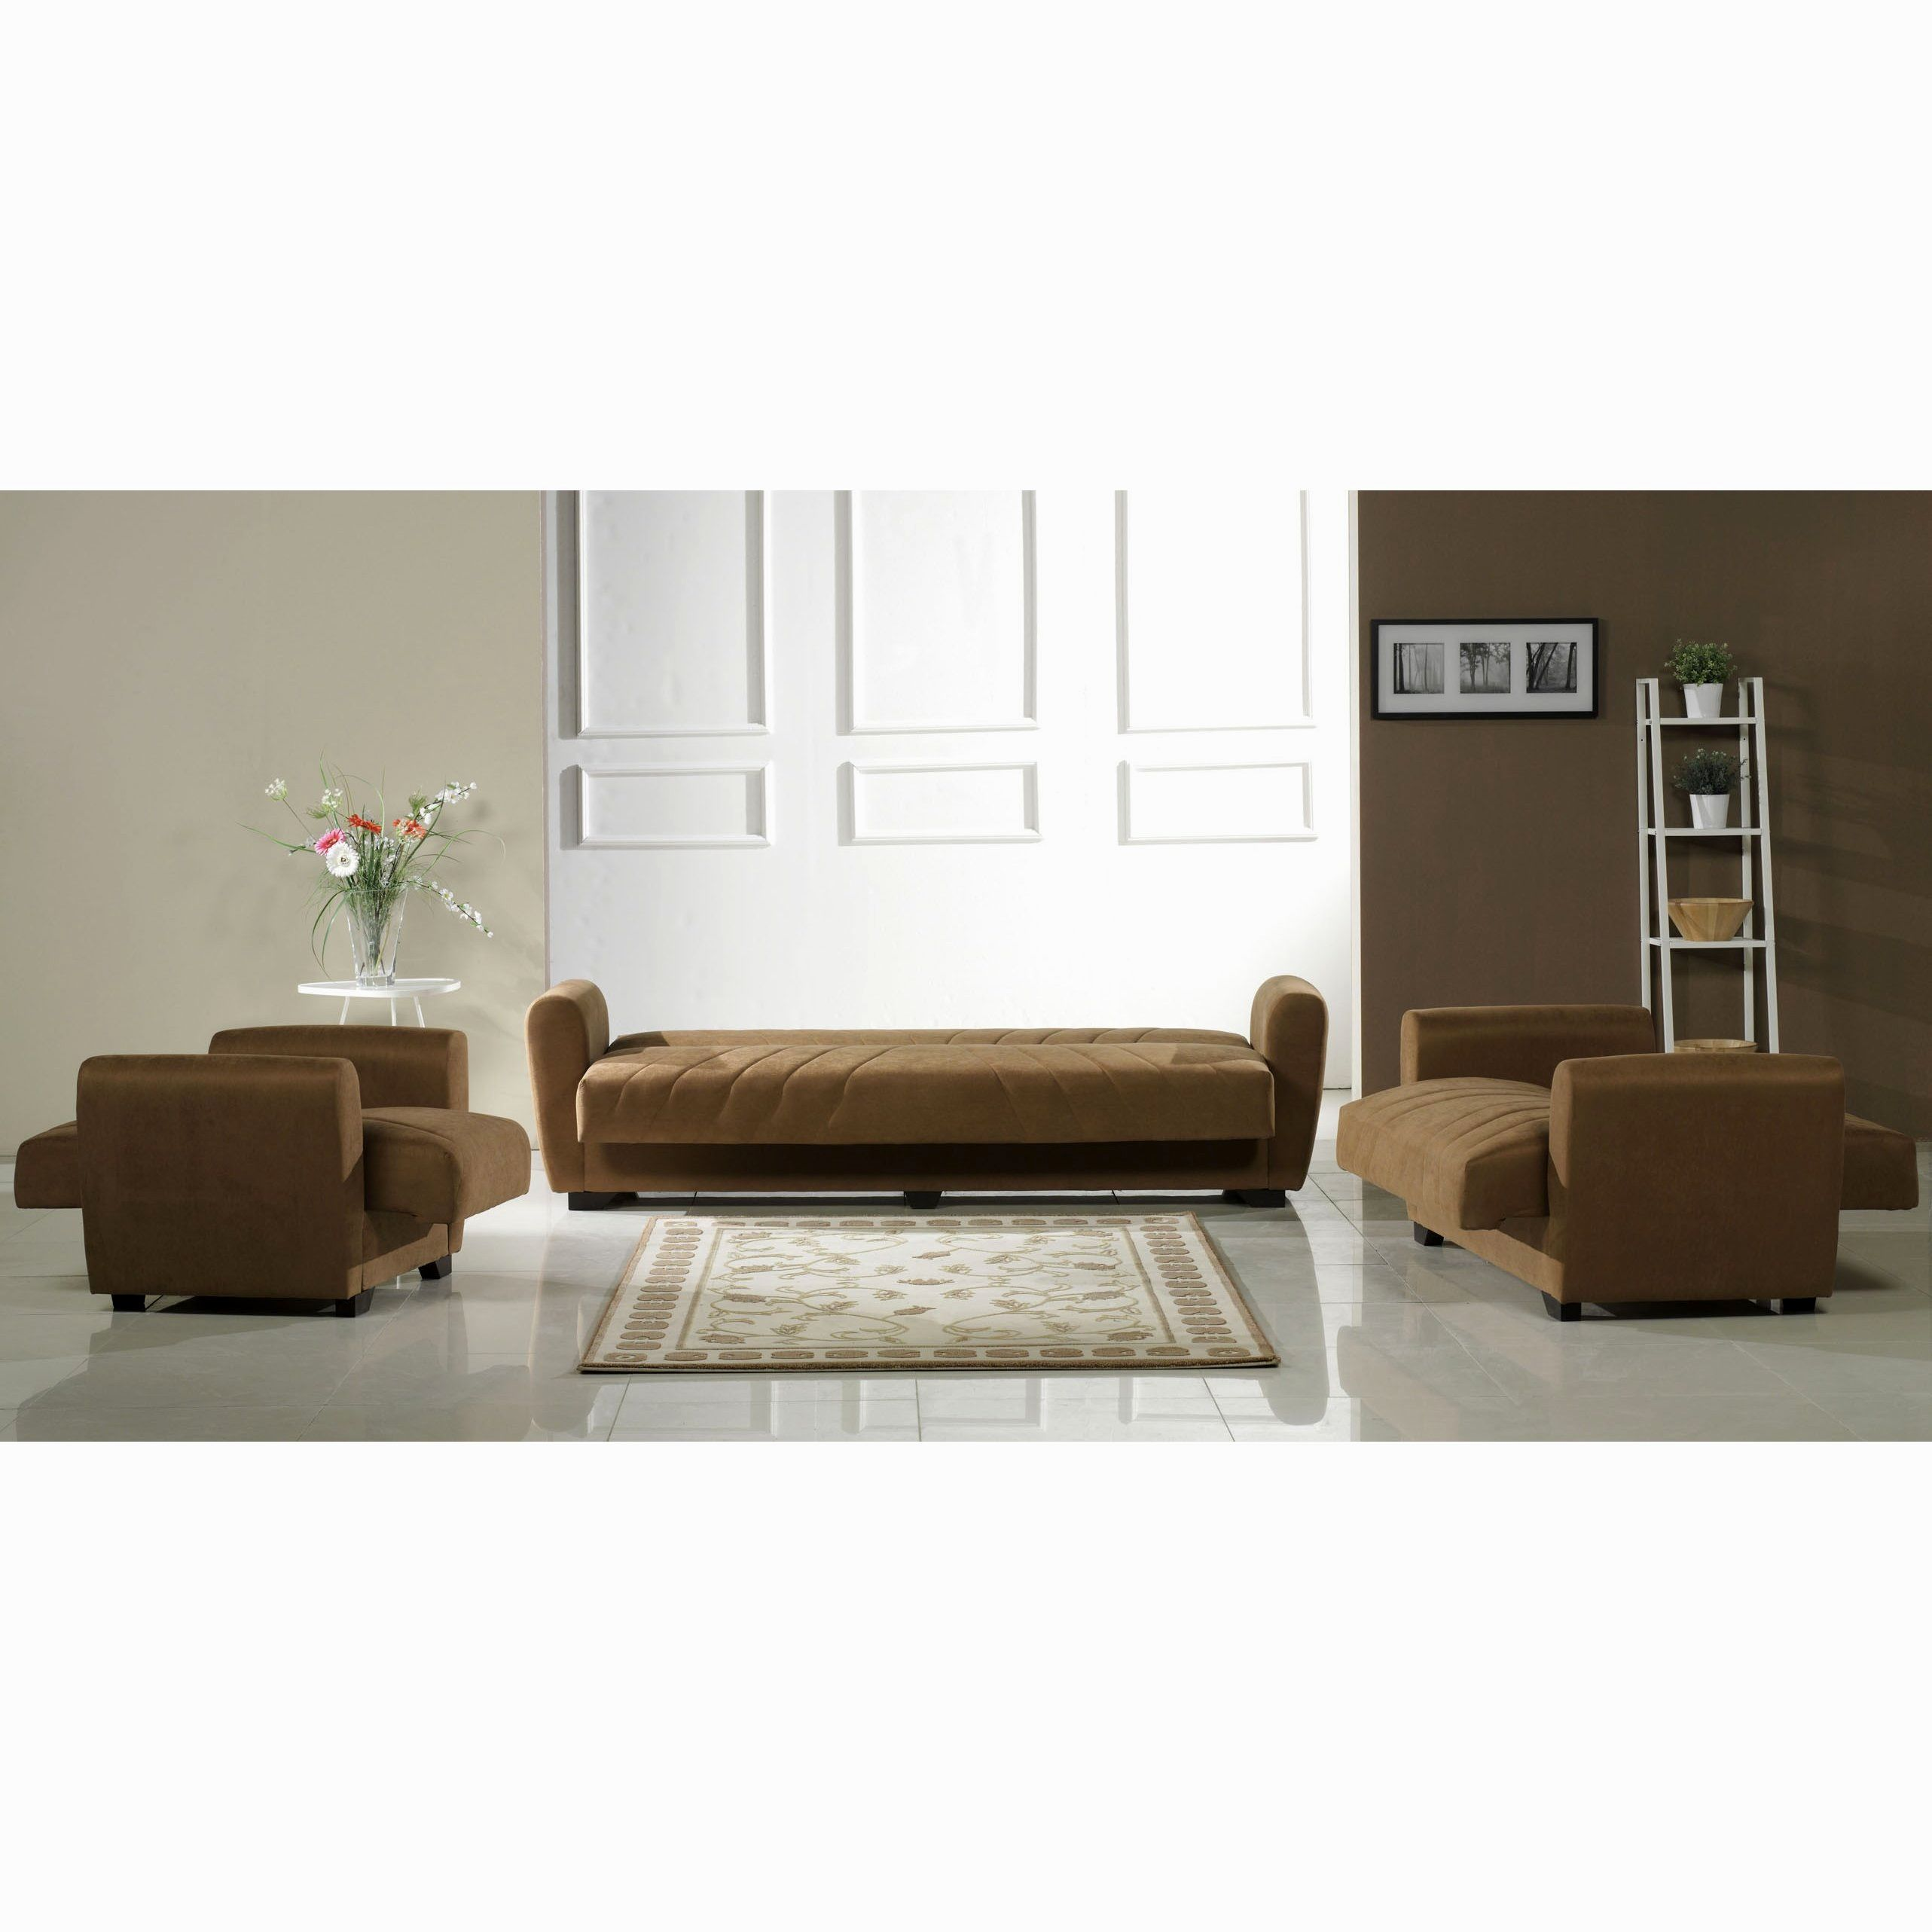 stylish mitchell gold sofa reviews gallery-Fancy Mitchell Gold sofa Reviews Photograph